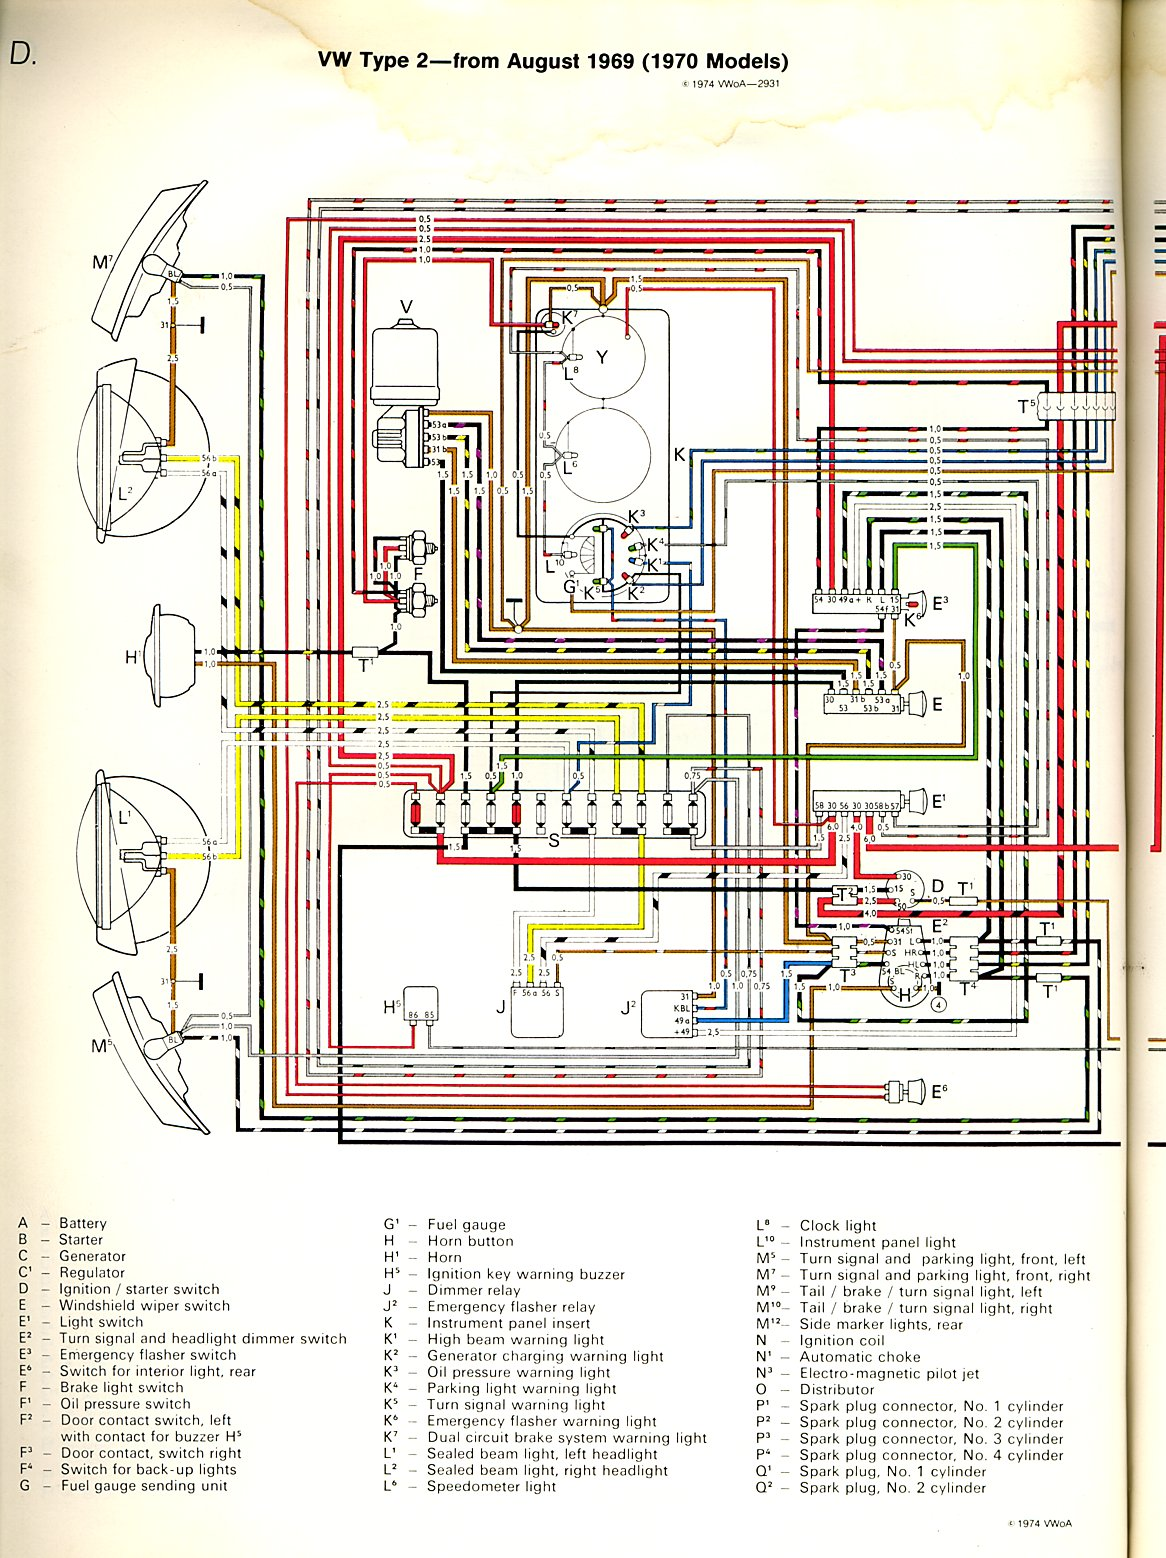 baybus_70a thesamba com type 2 wiring diagrams vw vanagon headlight wiring diagram at bayanpartner.co